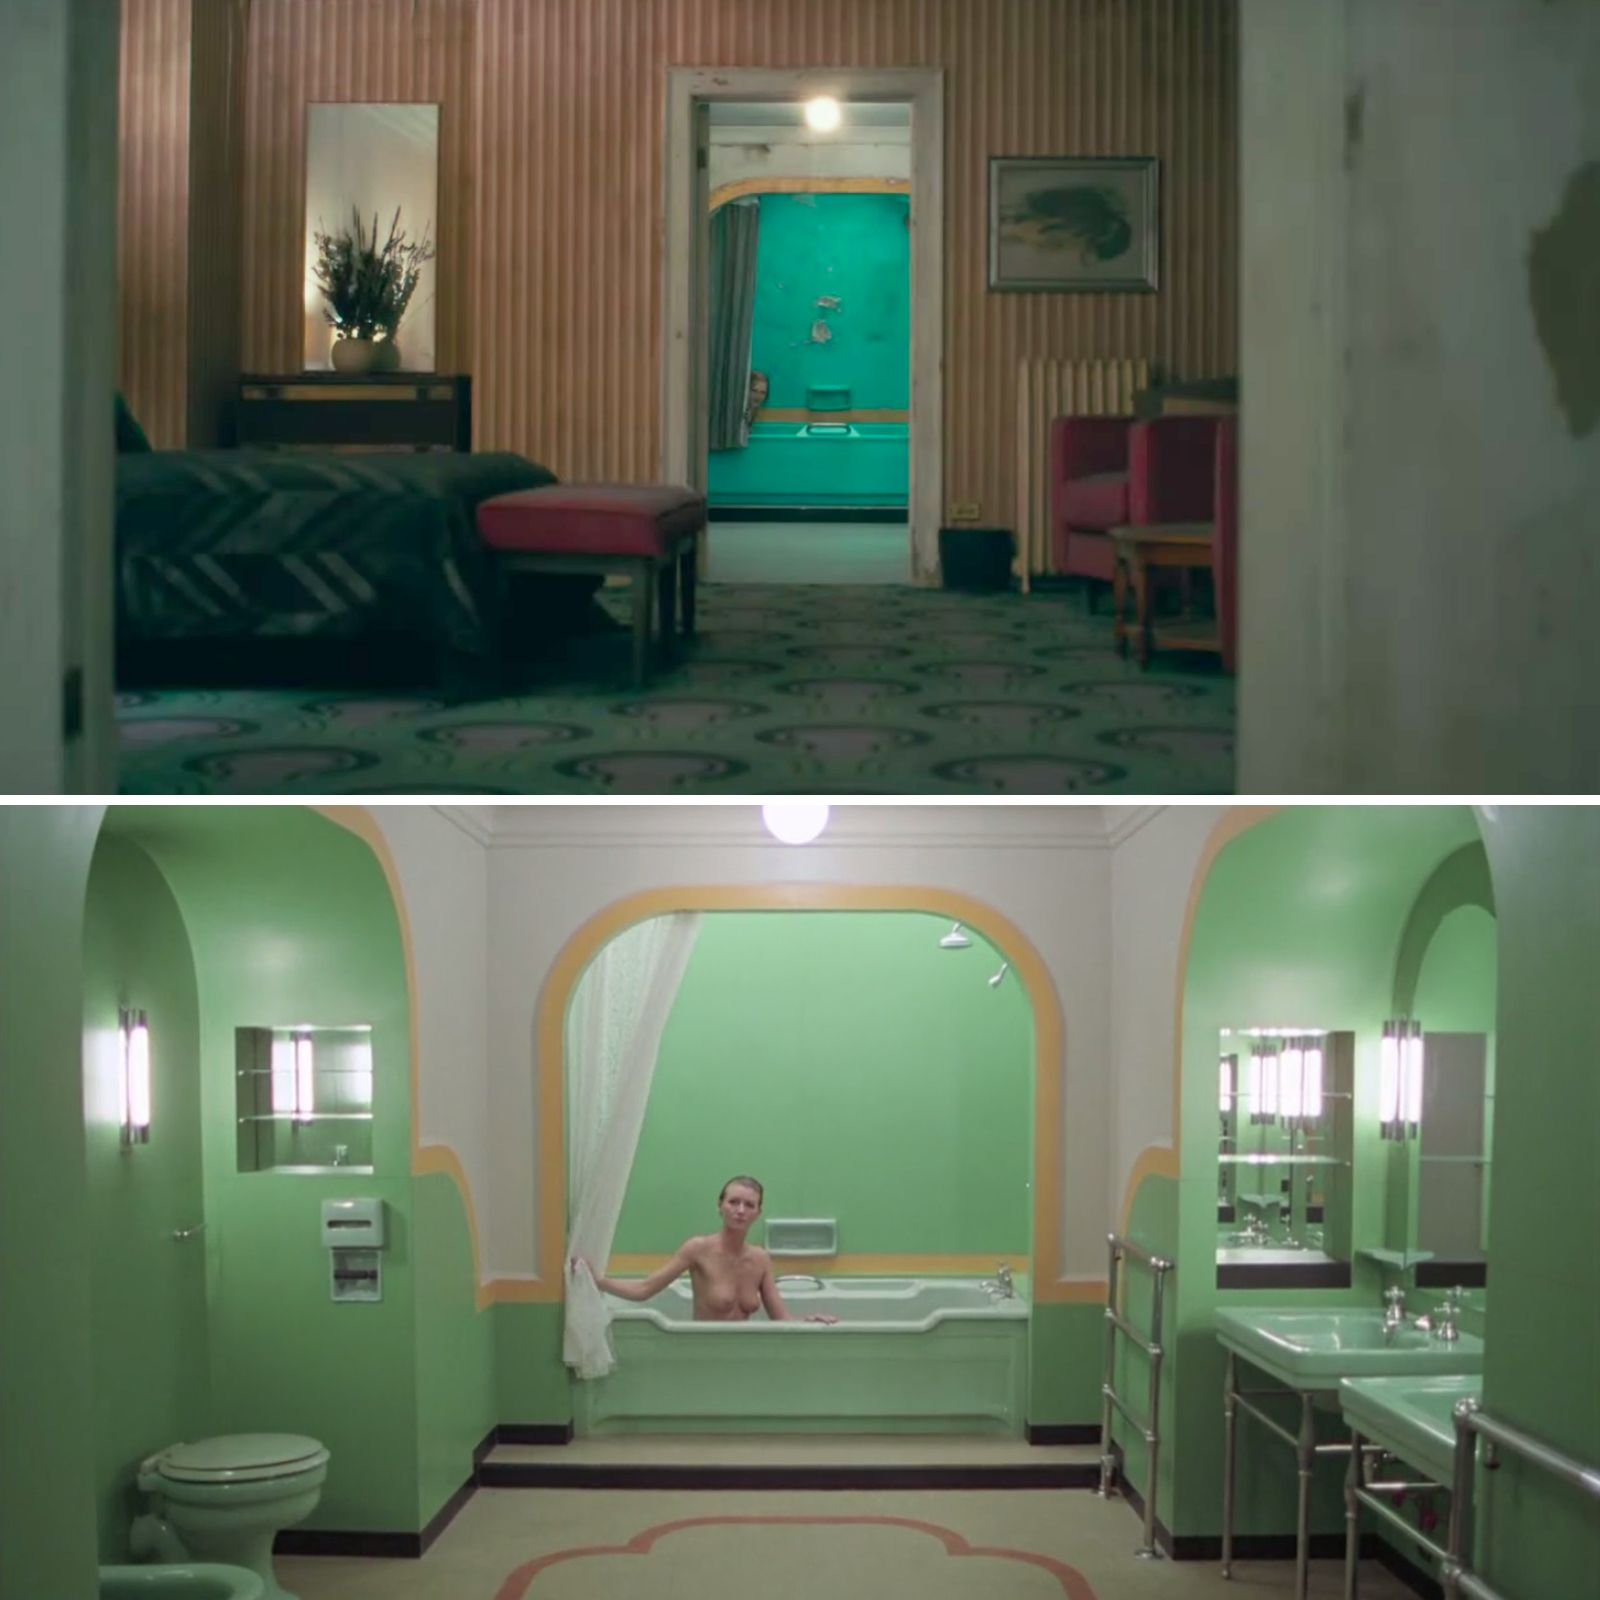 6 References To The Shining In The Doctor Sleep Trailer Film And Furniture Room 237 The Shining Room The Shining